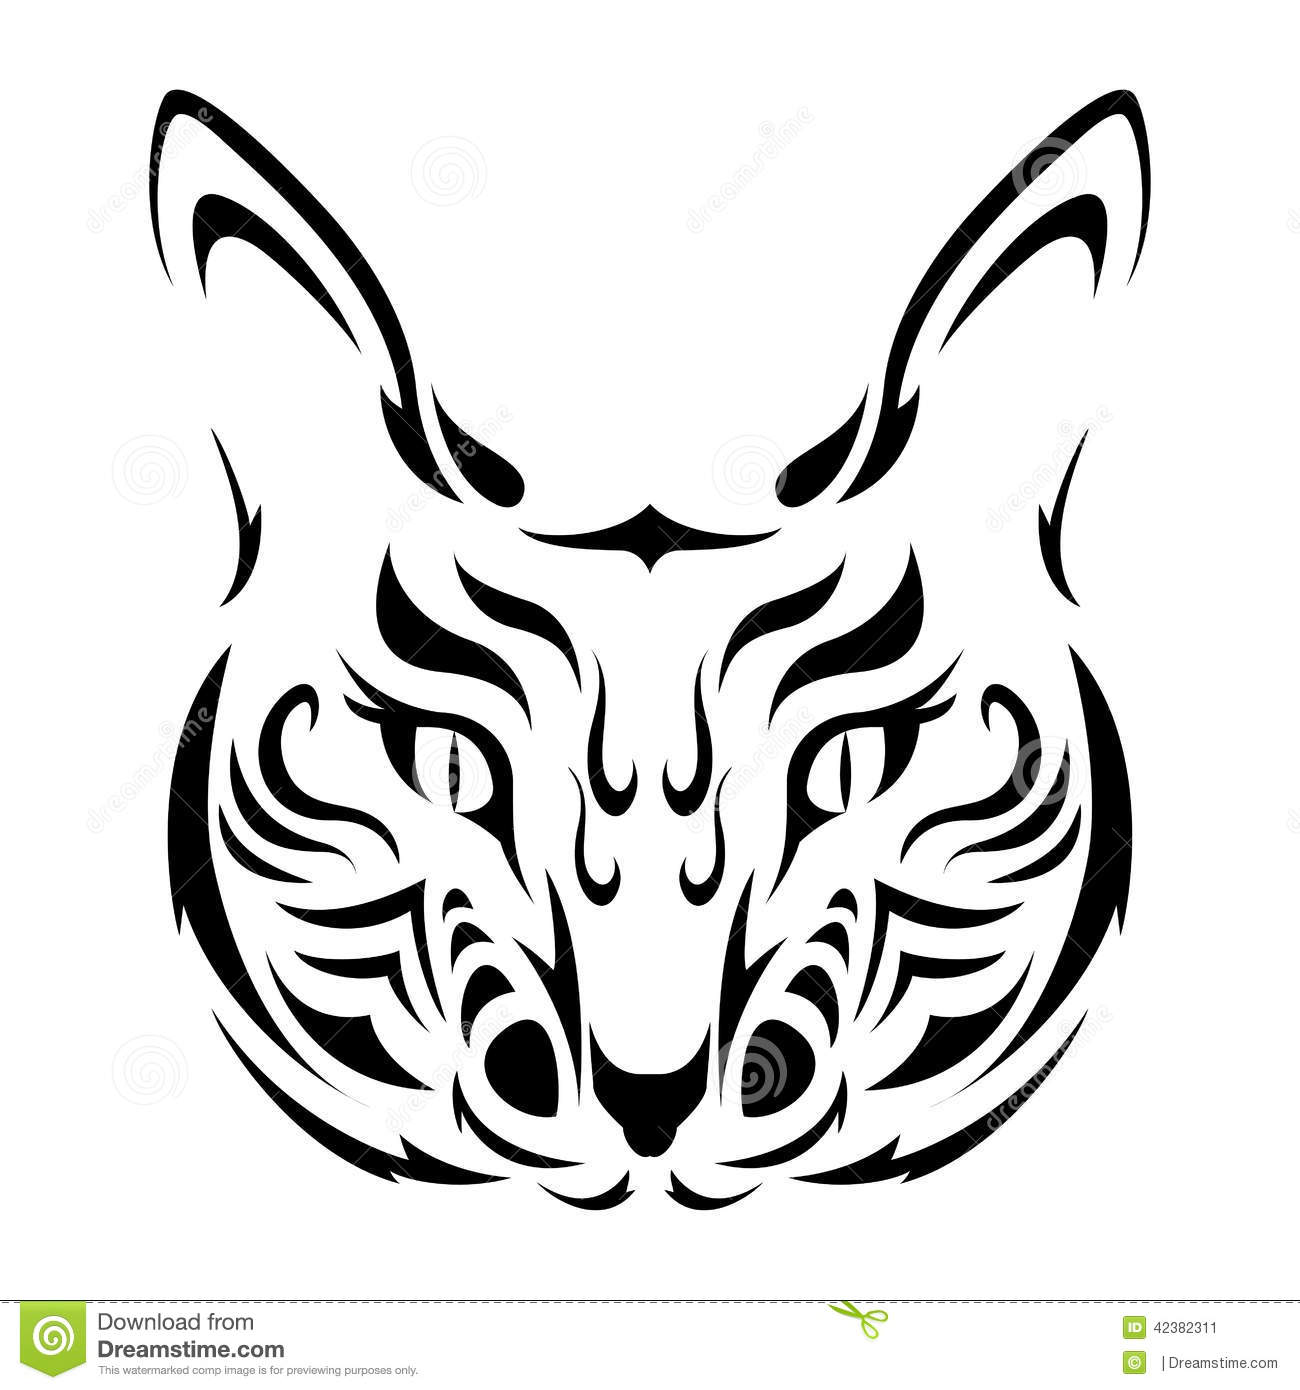 Tribal cat tattoo pictures Cached